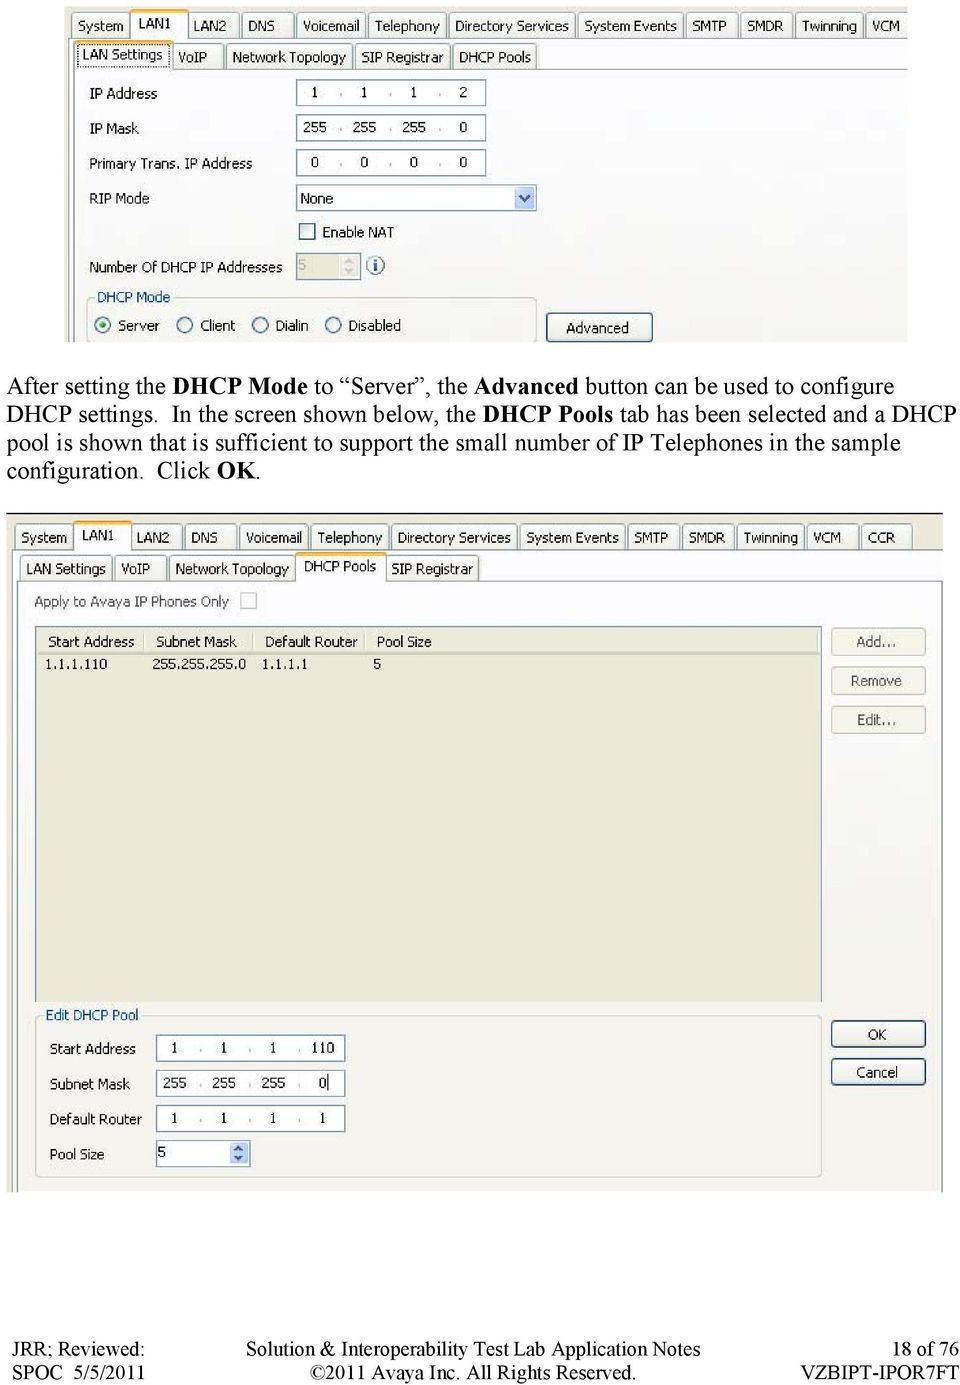 In the screen shown below, the DHCP Pools tab has been selected and a DHCP